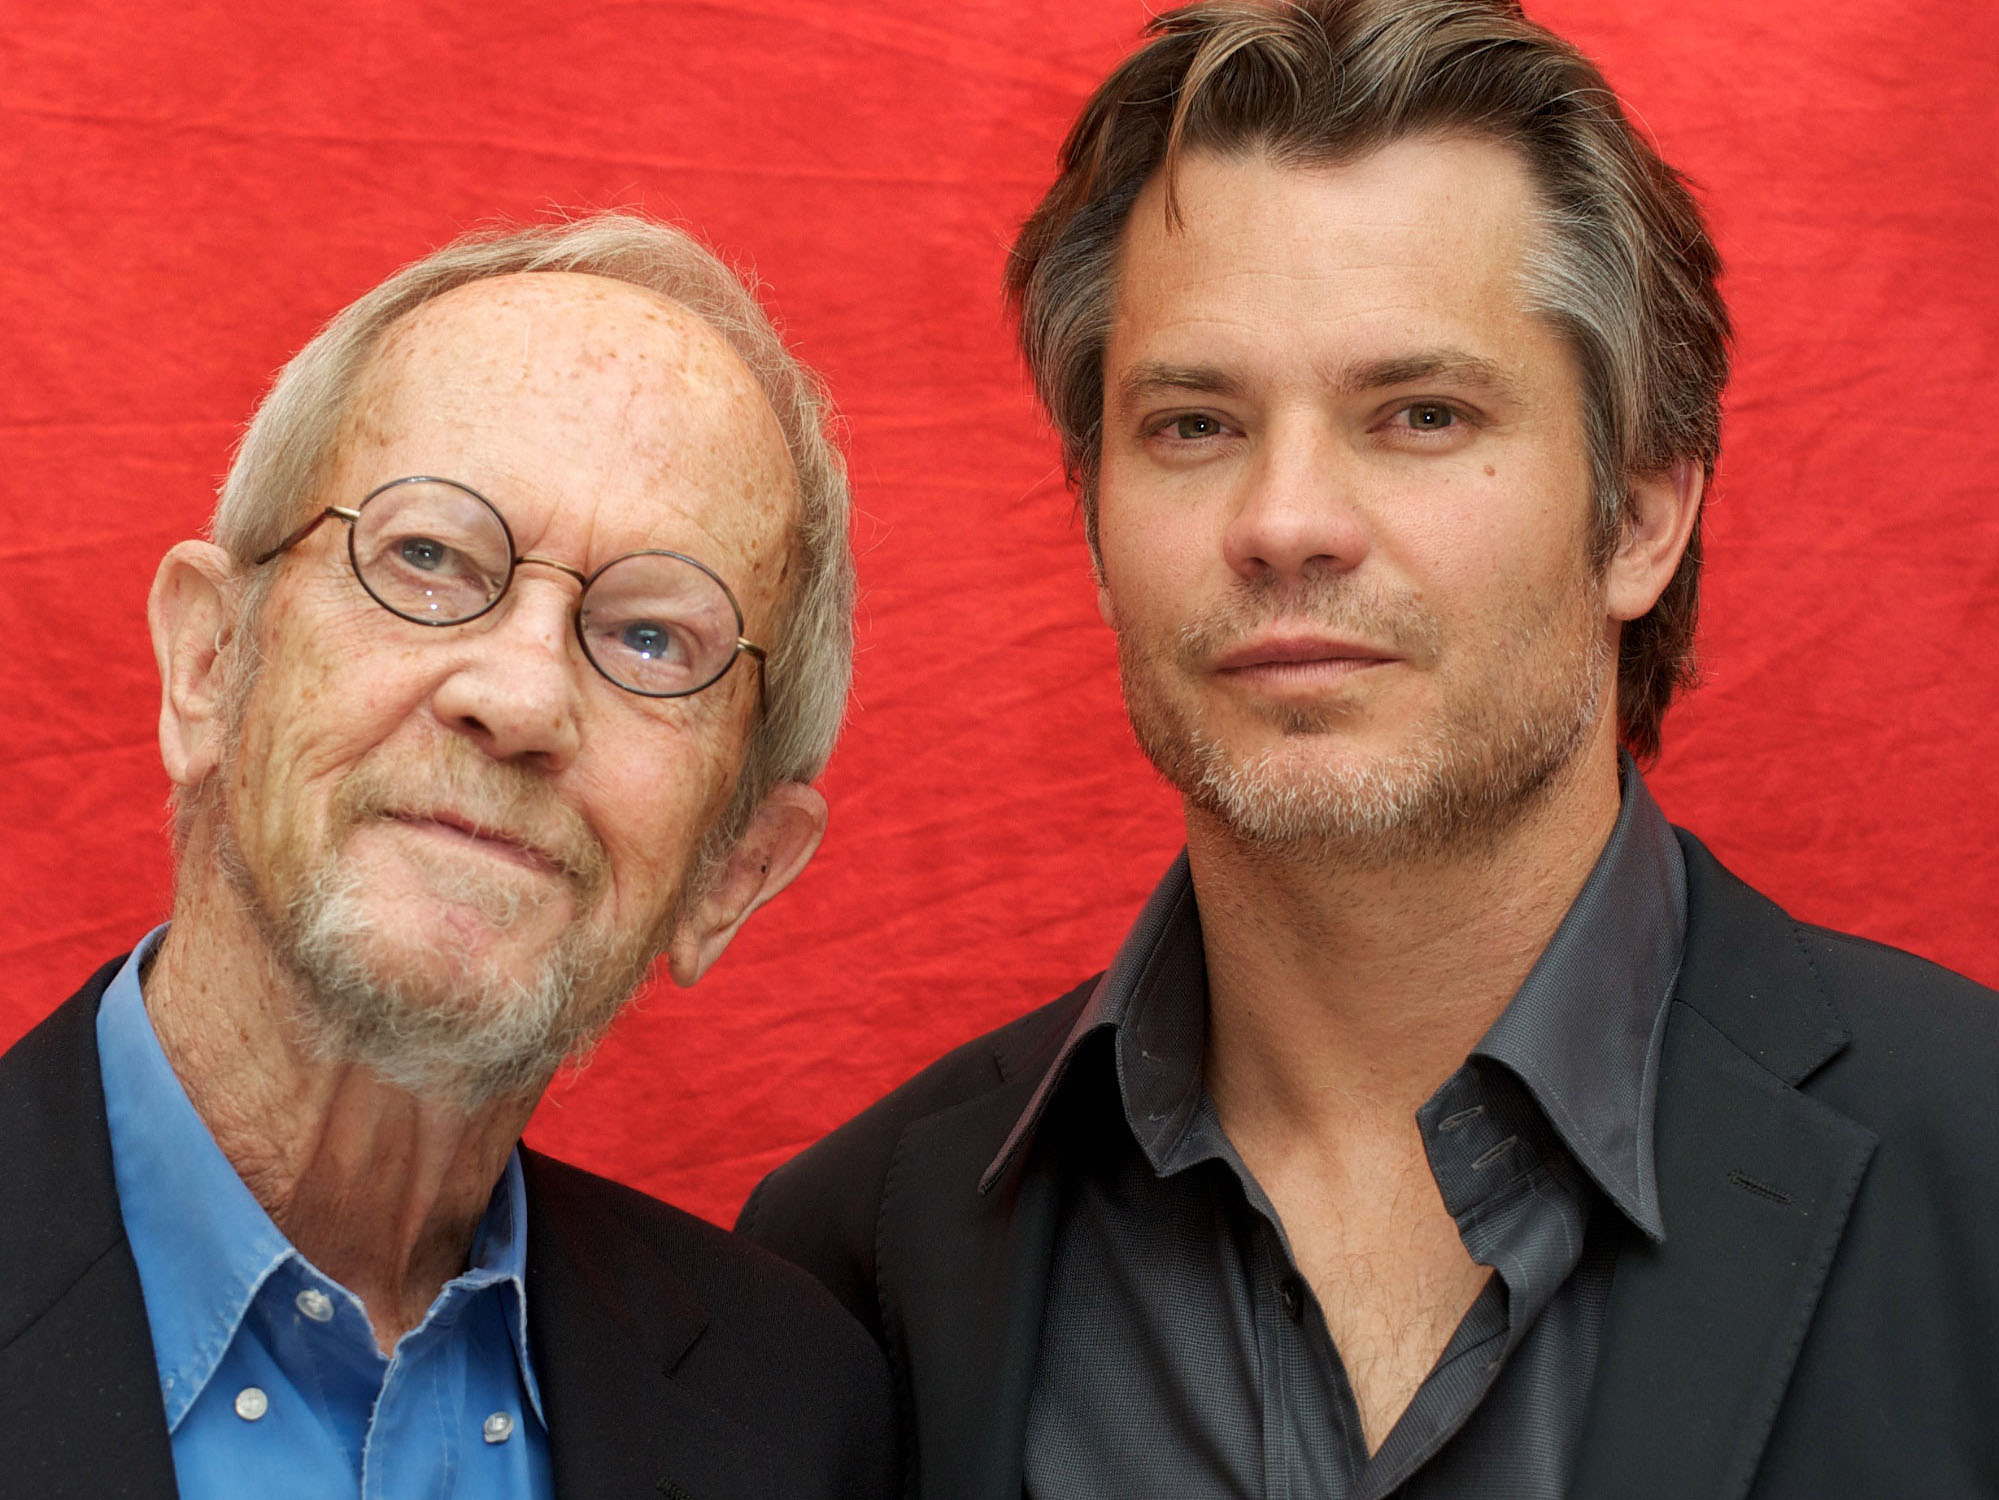 Elmore Leonard and Timothy Olyphant at the 'Justified' Press Conference at the Four Seasons Hotel on June 10, 2010 in Beverly Hills, California. (Vera Anderson/WireImage)